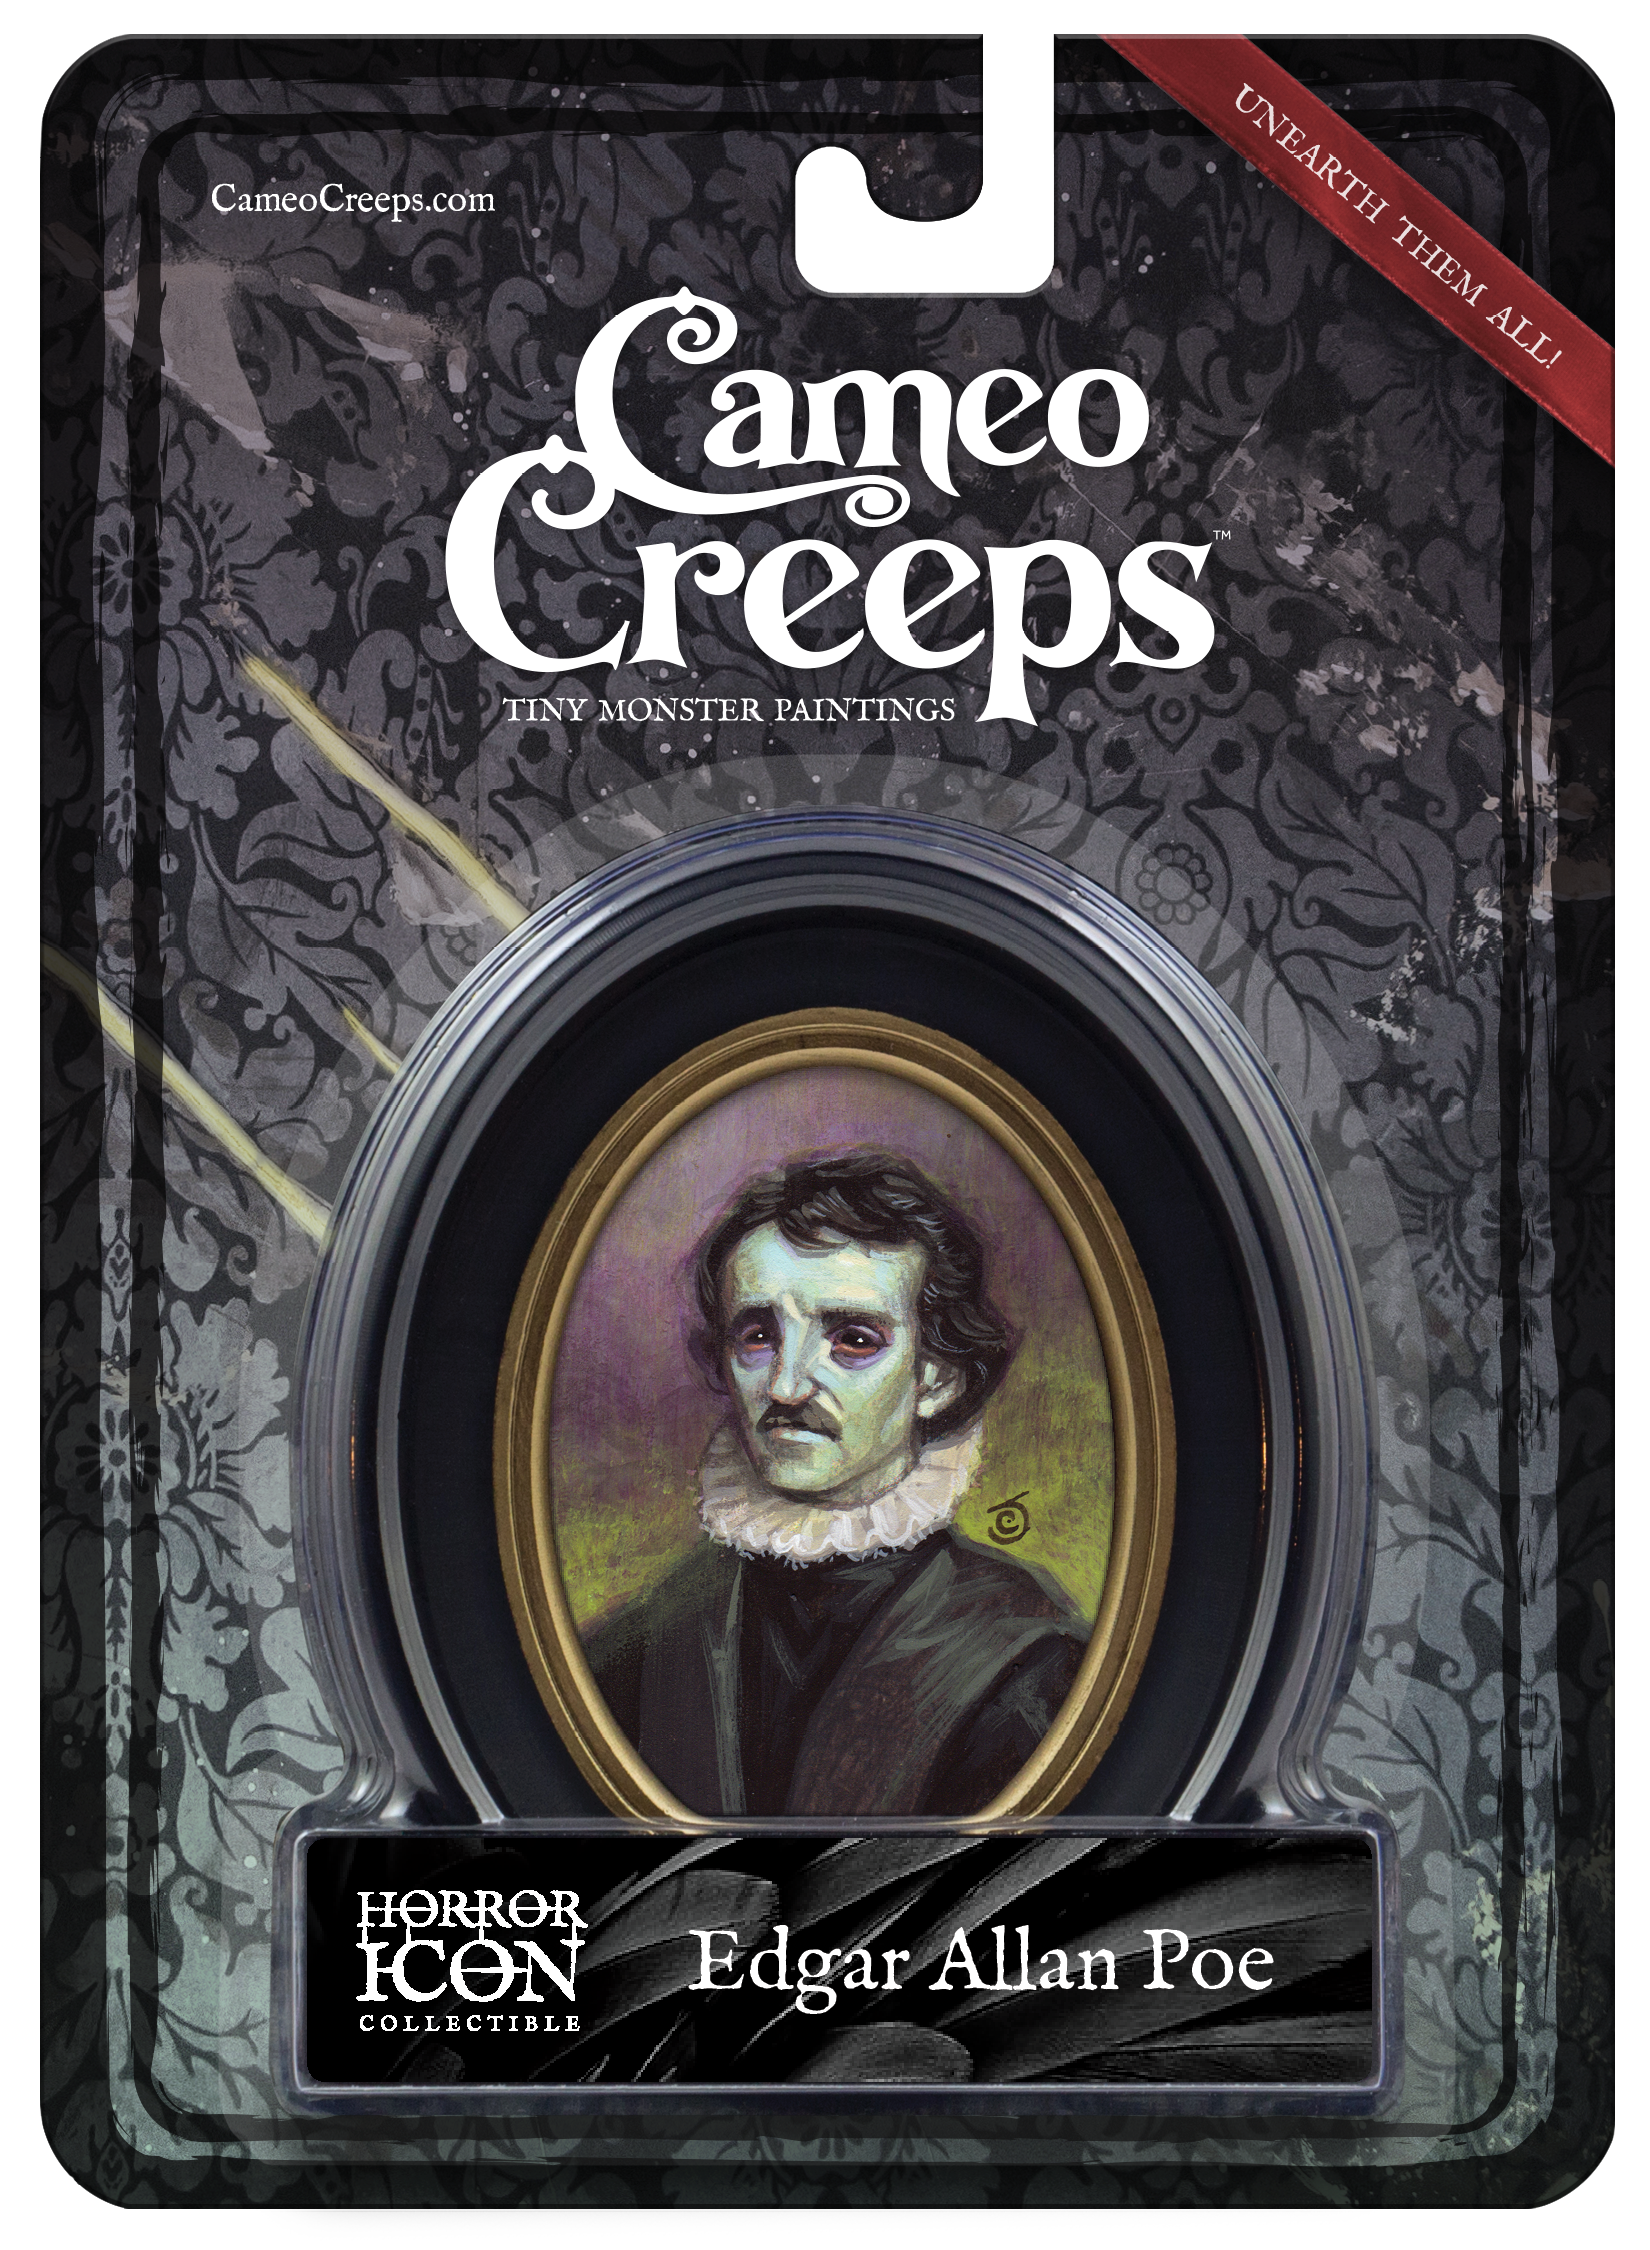 Cameo-Creeps-Edgar-Allan-Poe-Packaging.png